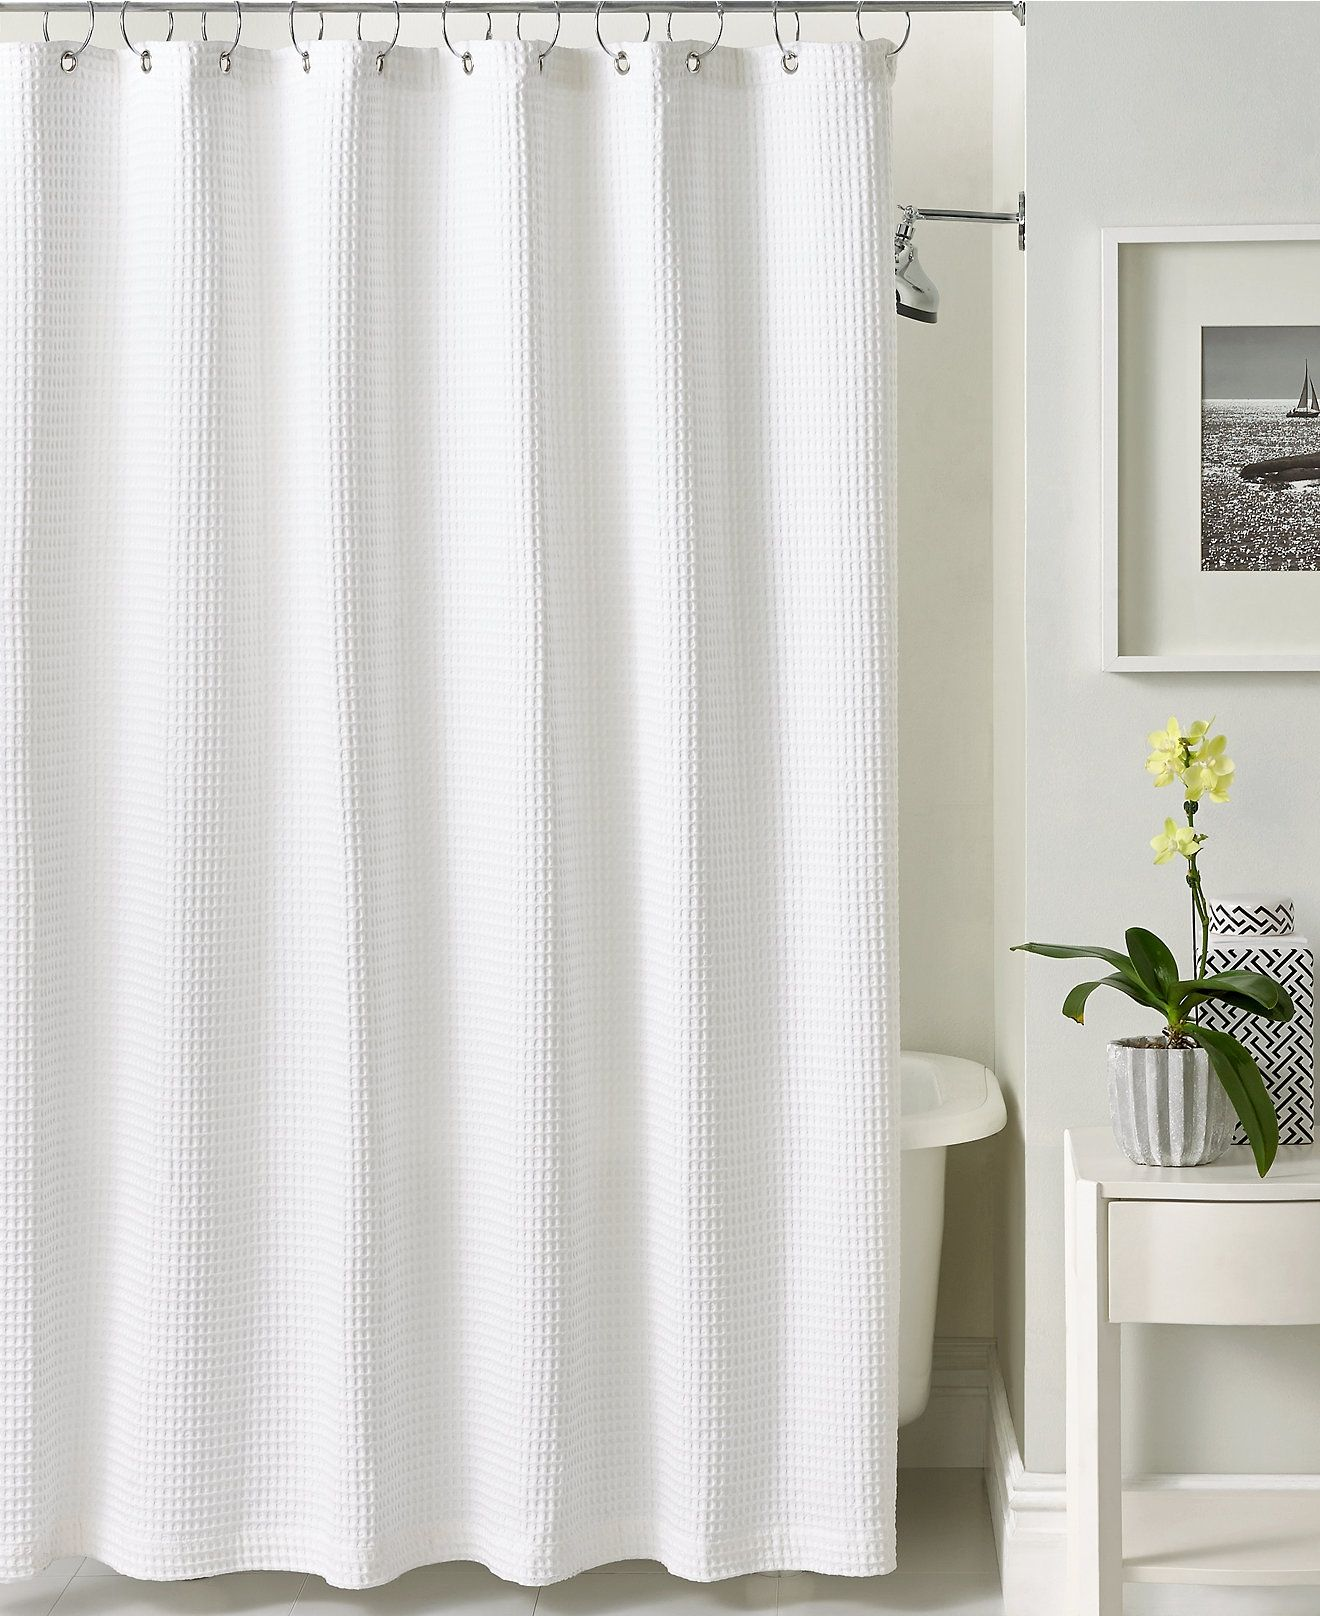 Sears Shower Curtains With Matching Window Curtains | http://realtag ...